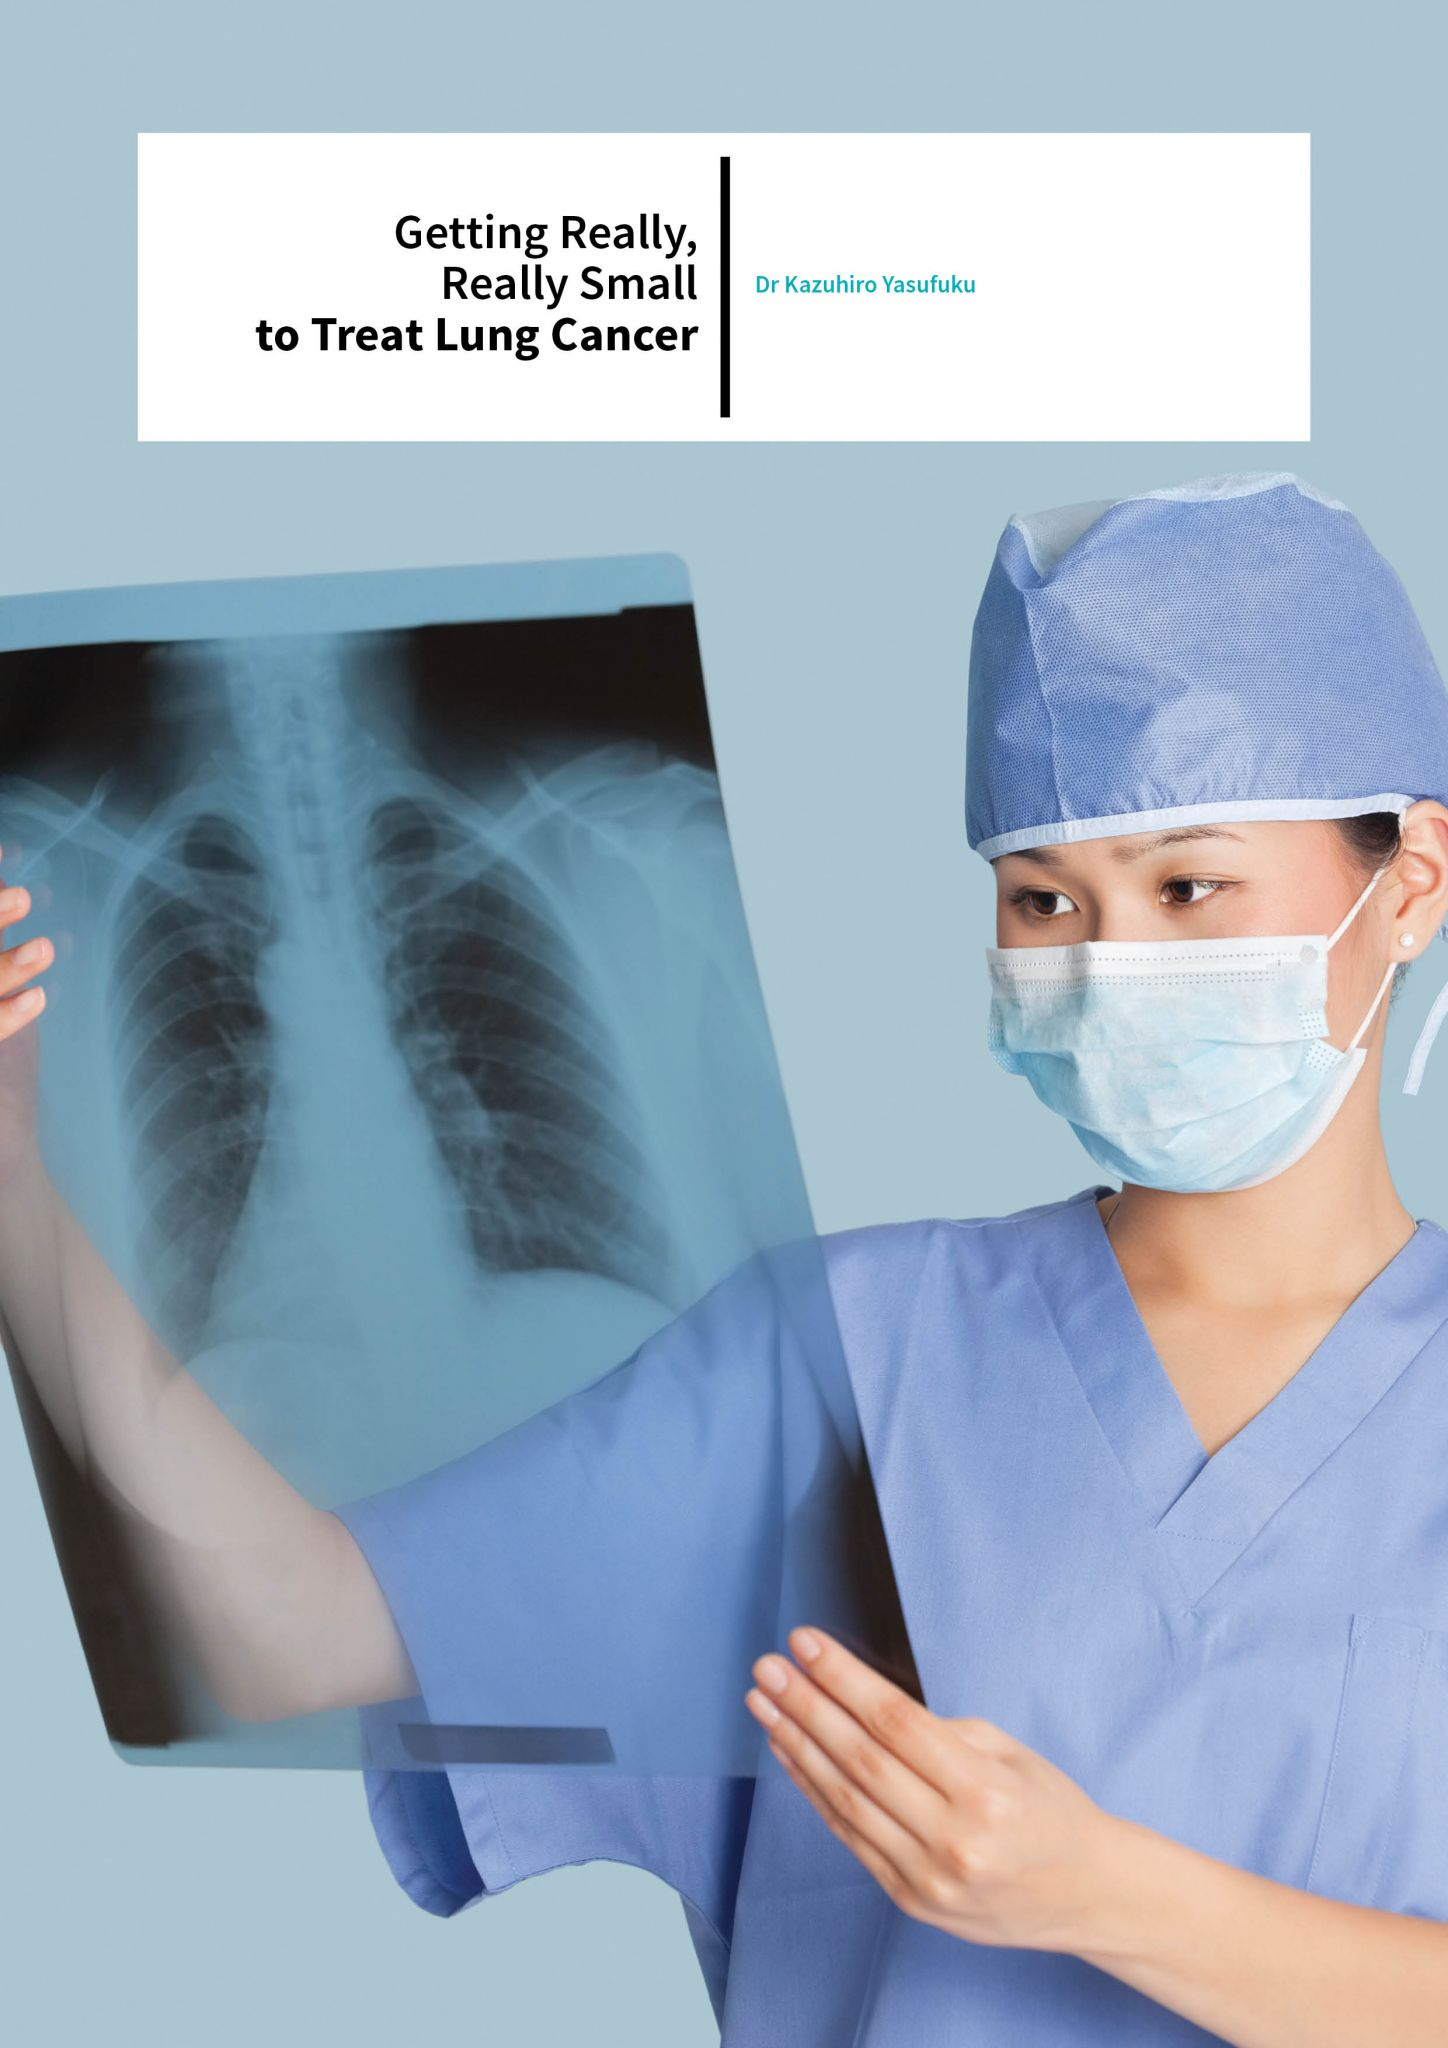 Dr Kazuhiro Yasufuku – Getting Really, Really Small to Treat Lung Cancer